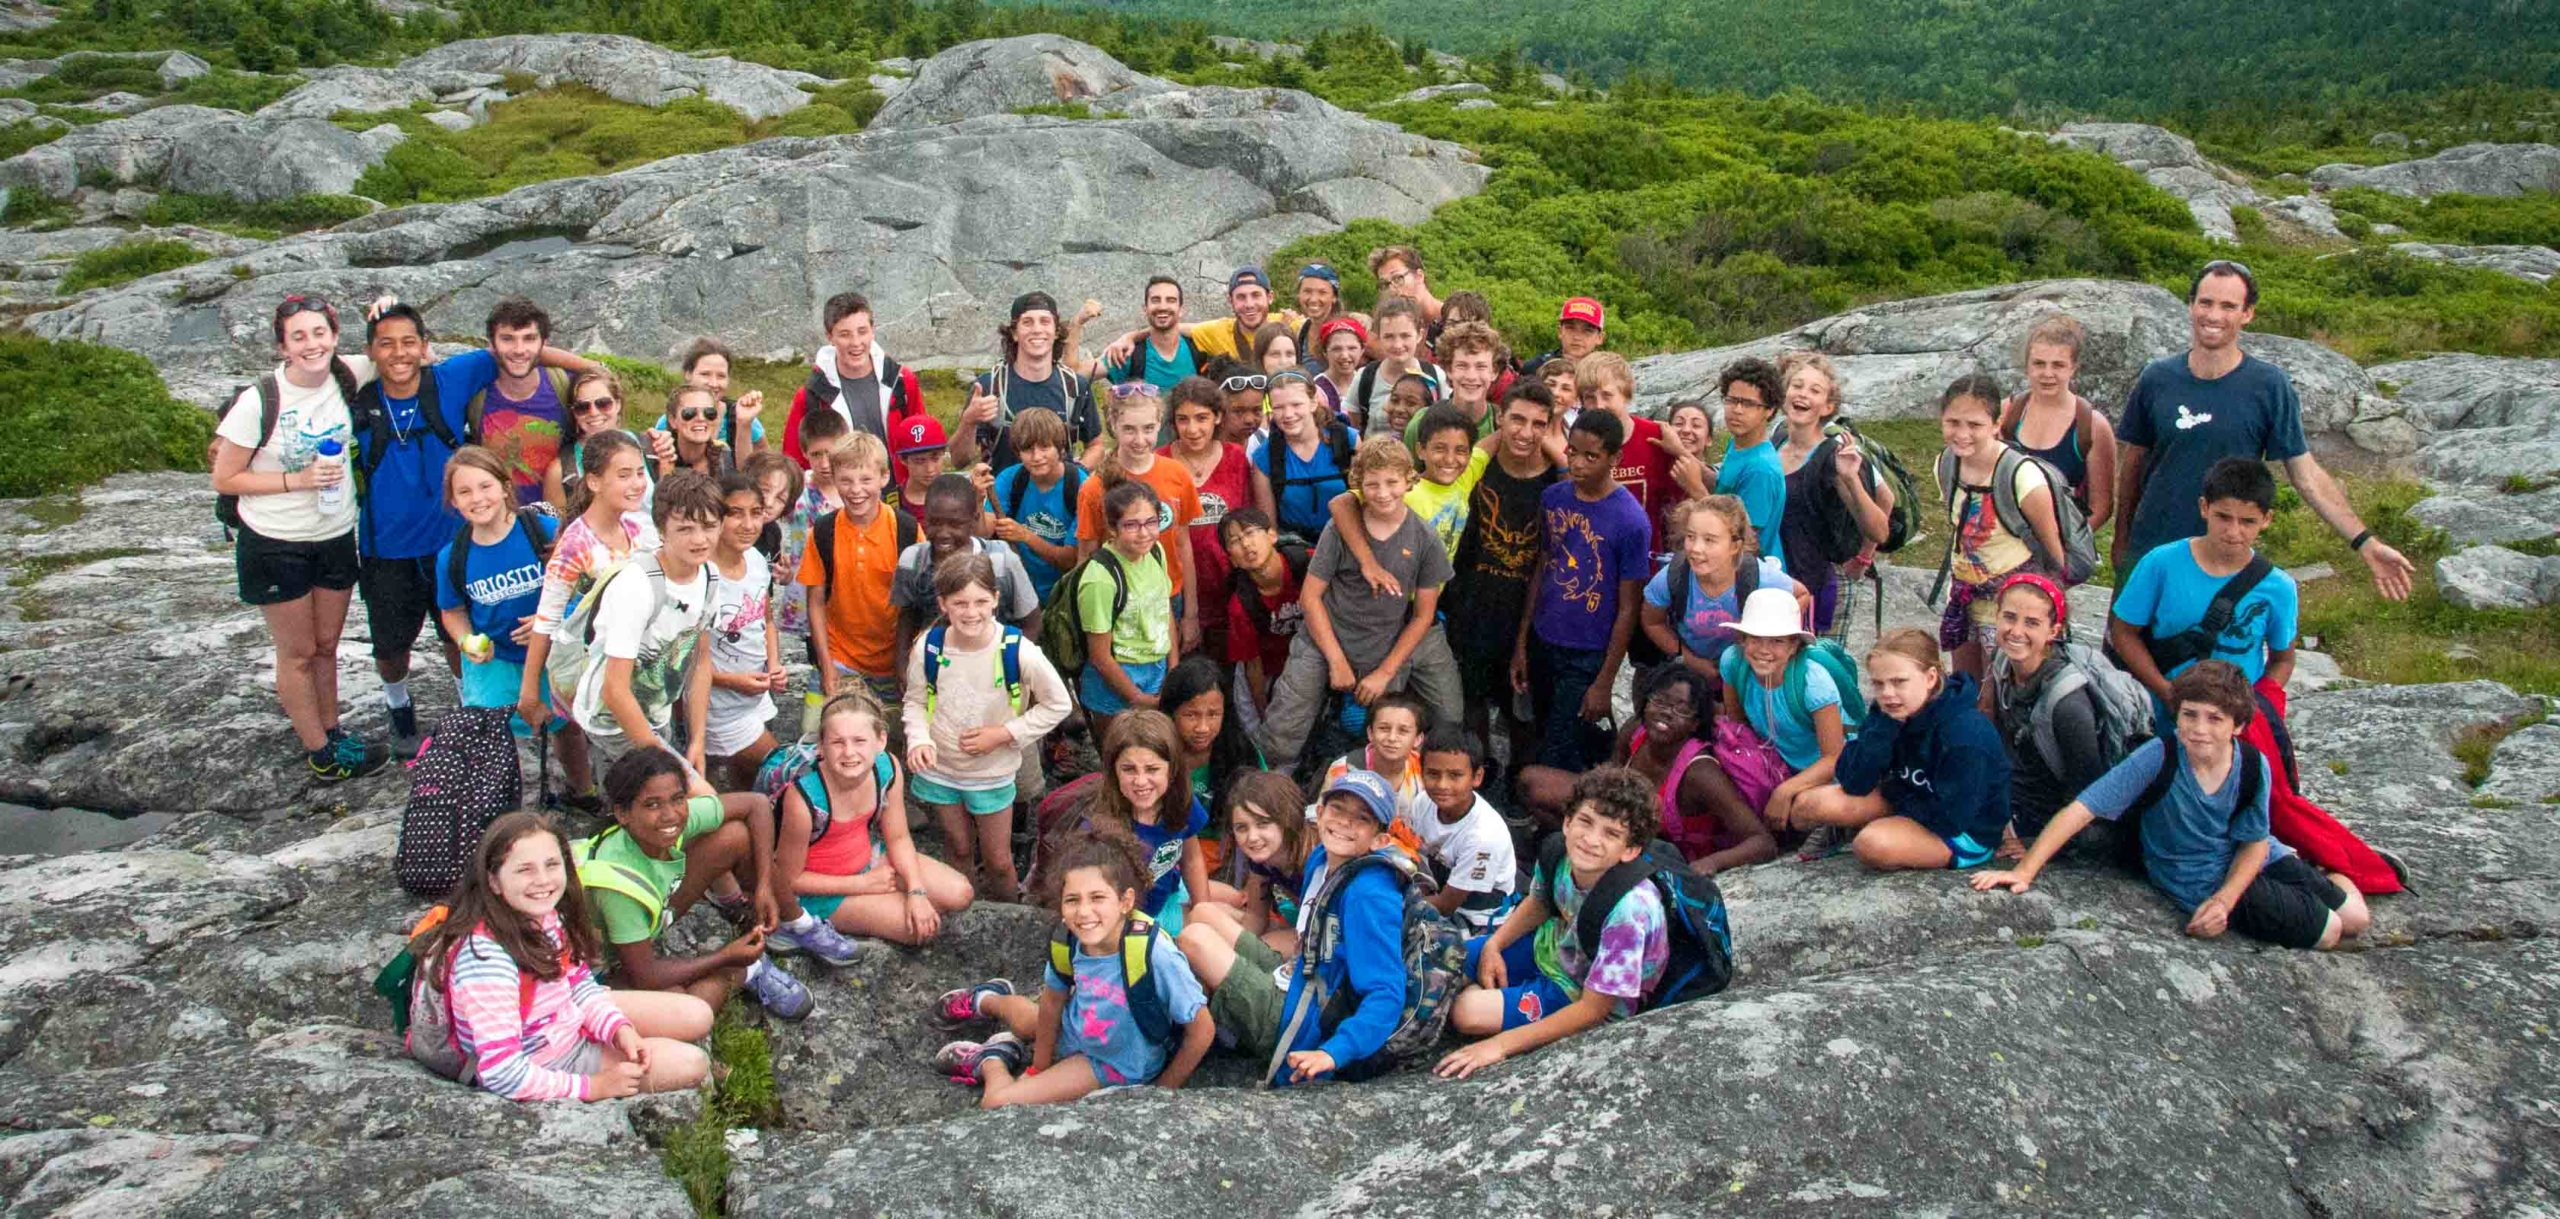 A large group of campers smiling at the camera on a hike on top of a mountain.